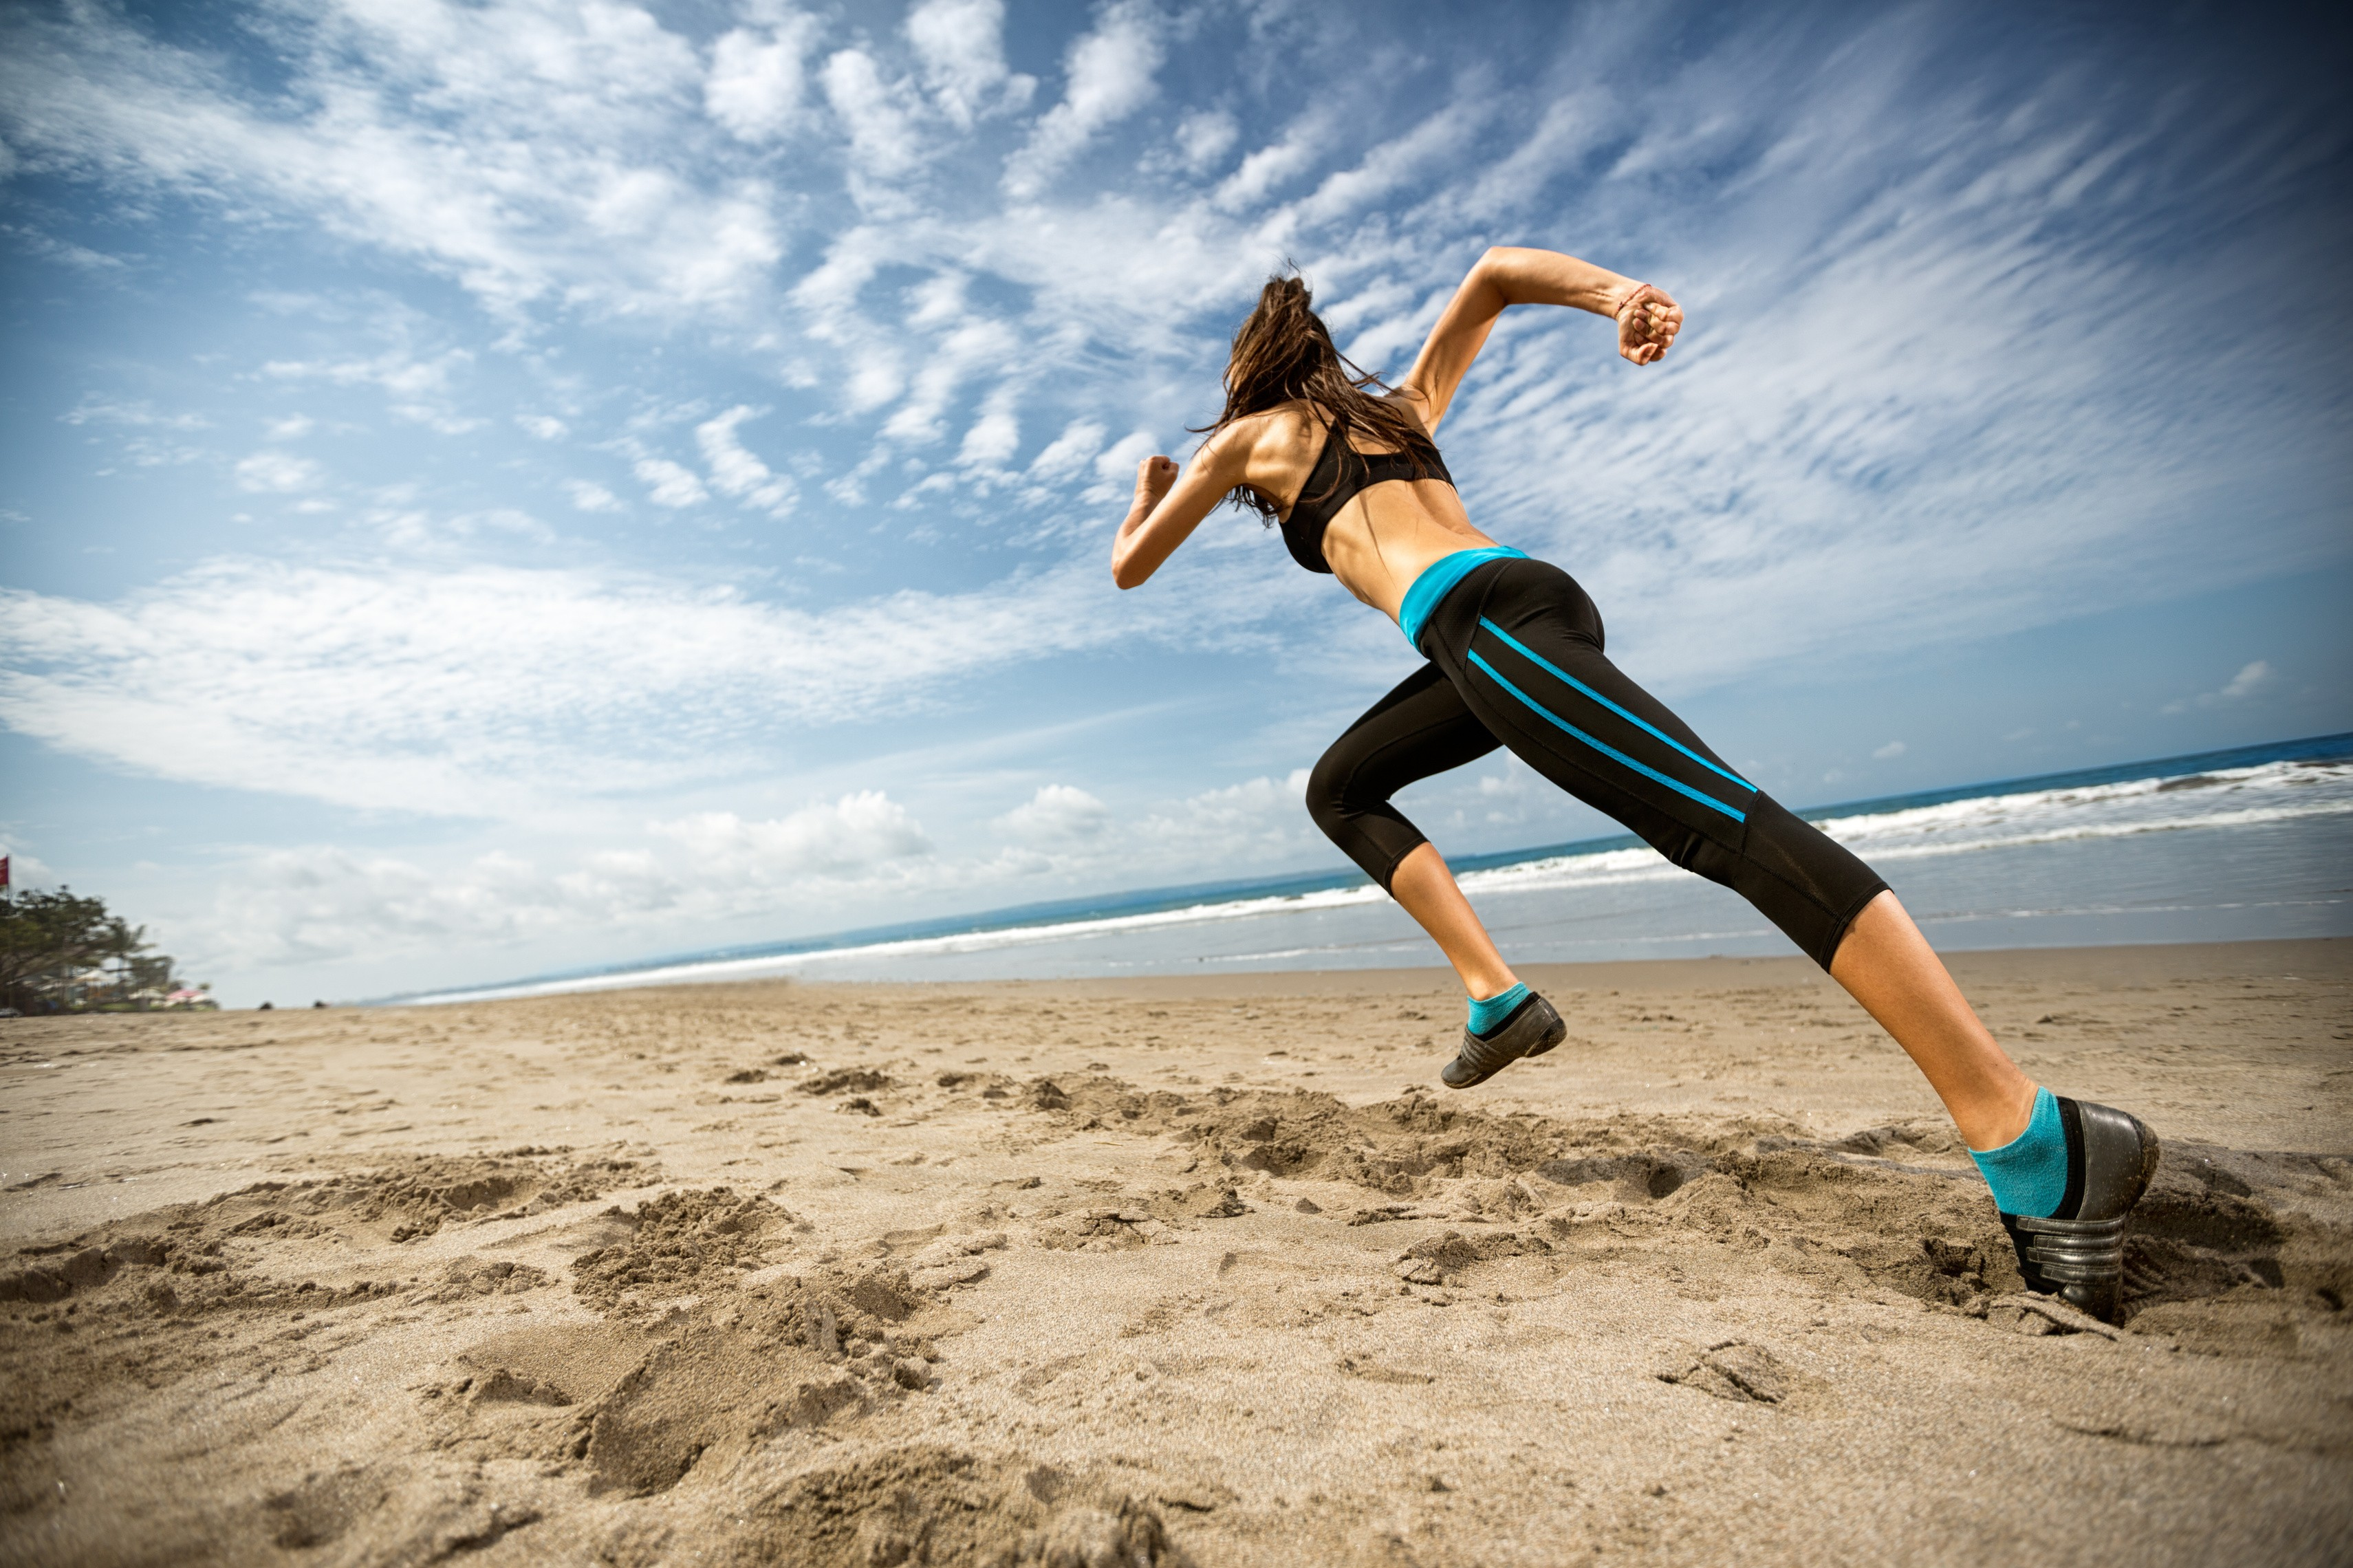 Jumping Fitness Wallpaper Sports Women Sea Jumping Beach Fitness